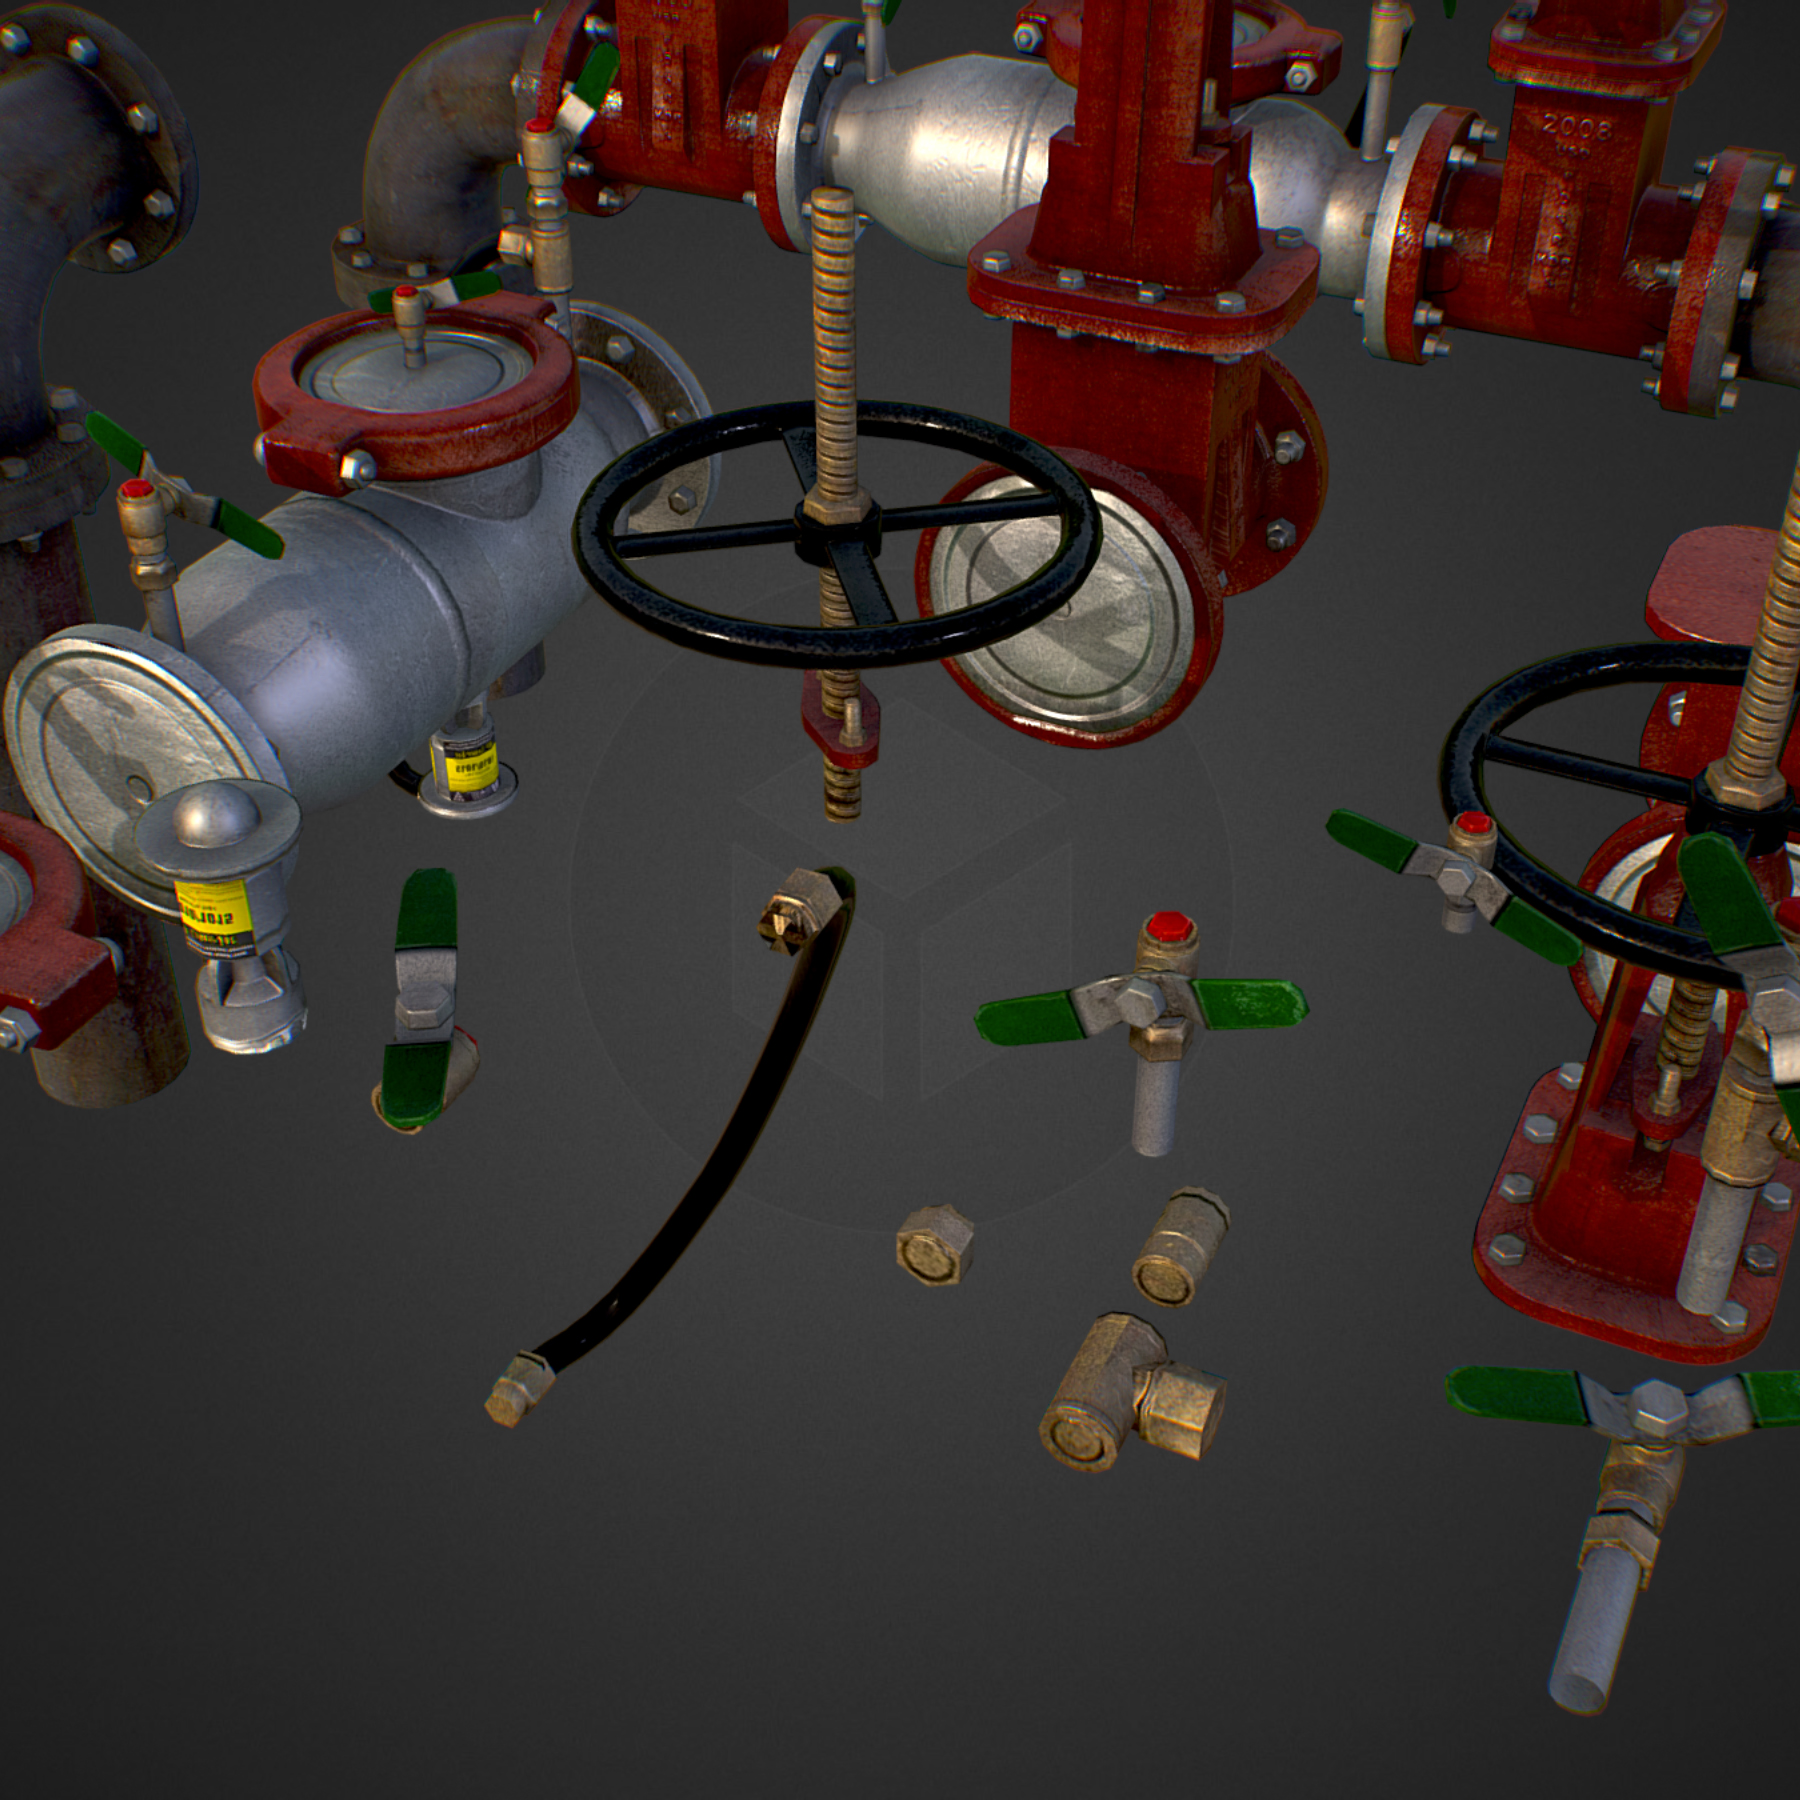 low poly game backflow water pipe constructor 3d model max  fbx ma mb tga targa icb vda vst pix obj 272470